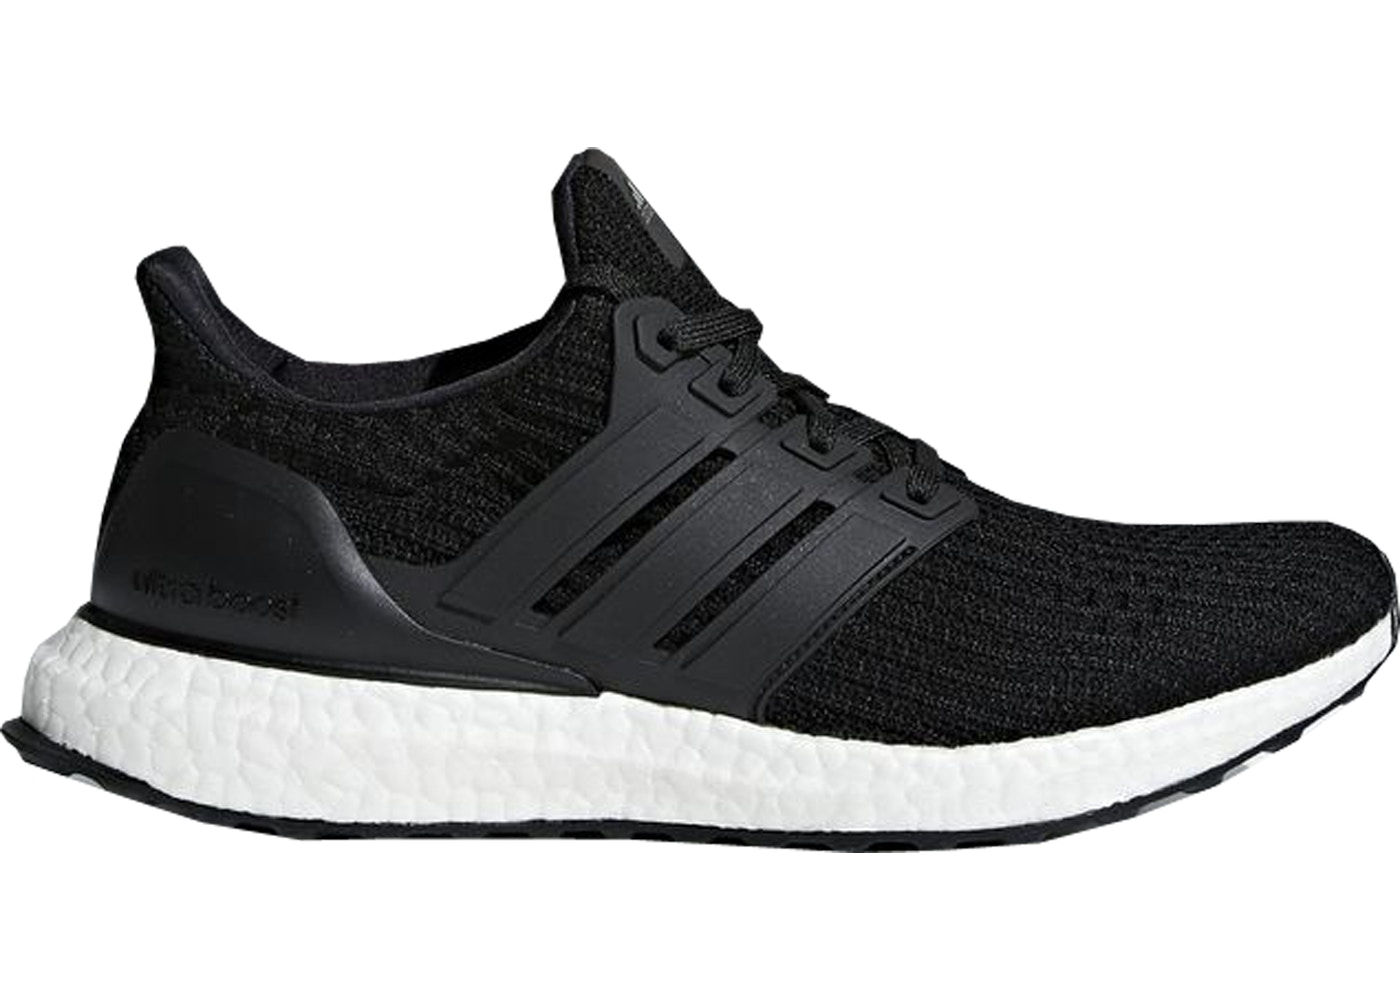 a2917f87eb9 Buy adidas Ultra Boost 4.0 Shoes   Deadstock Sneakers